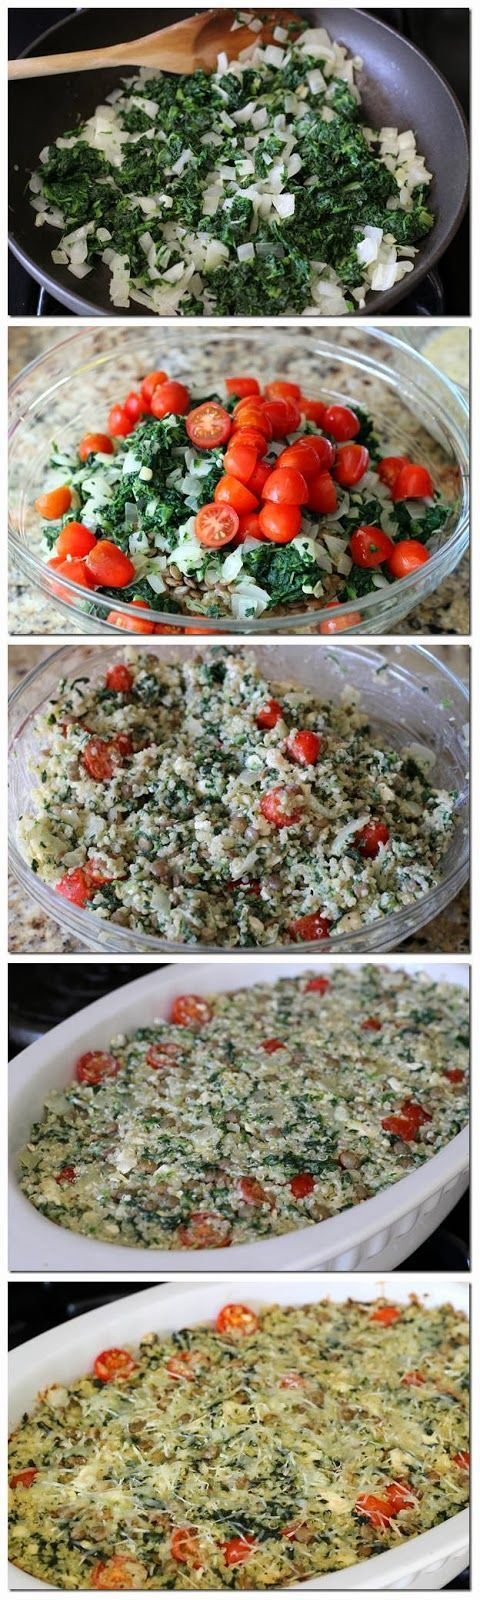 clutch bag online shop Recipe Best  Mediterranean Quinoa Casserole  healthy  quinoa  casserole